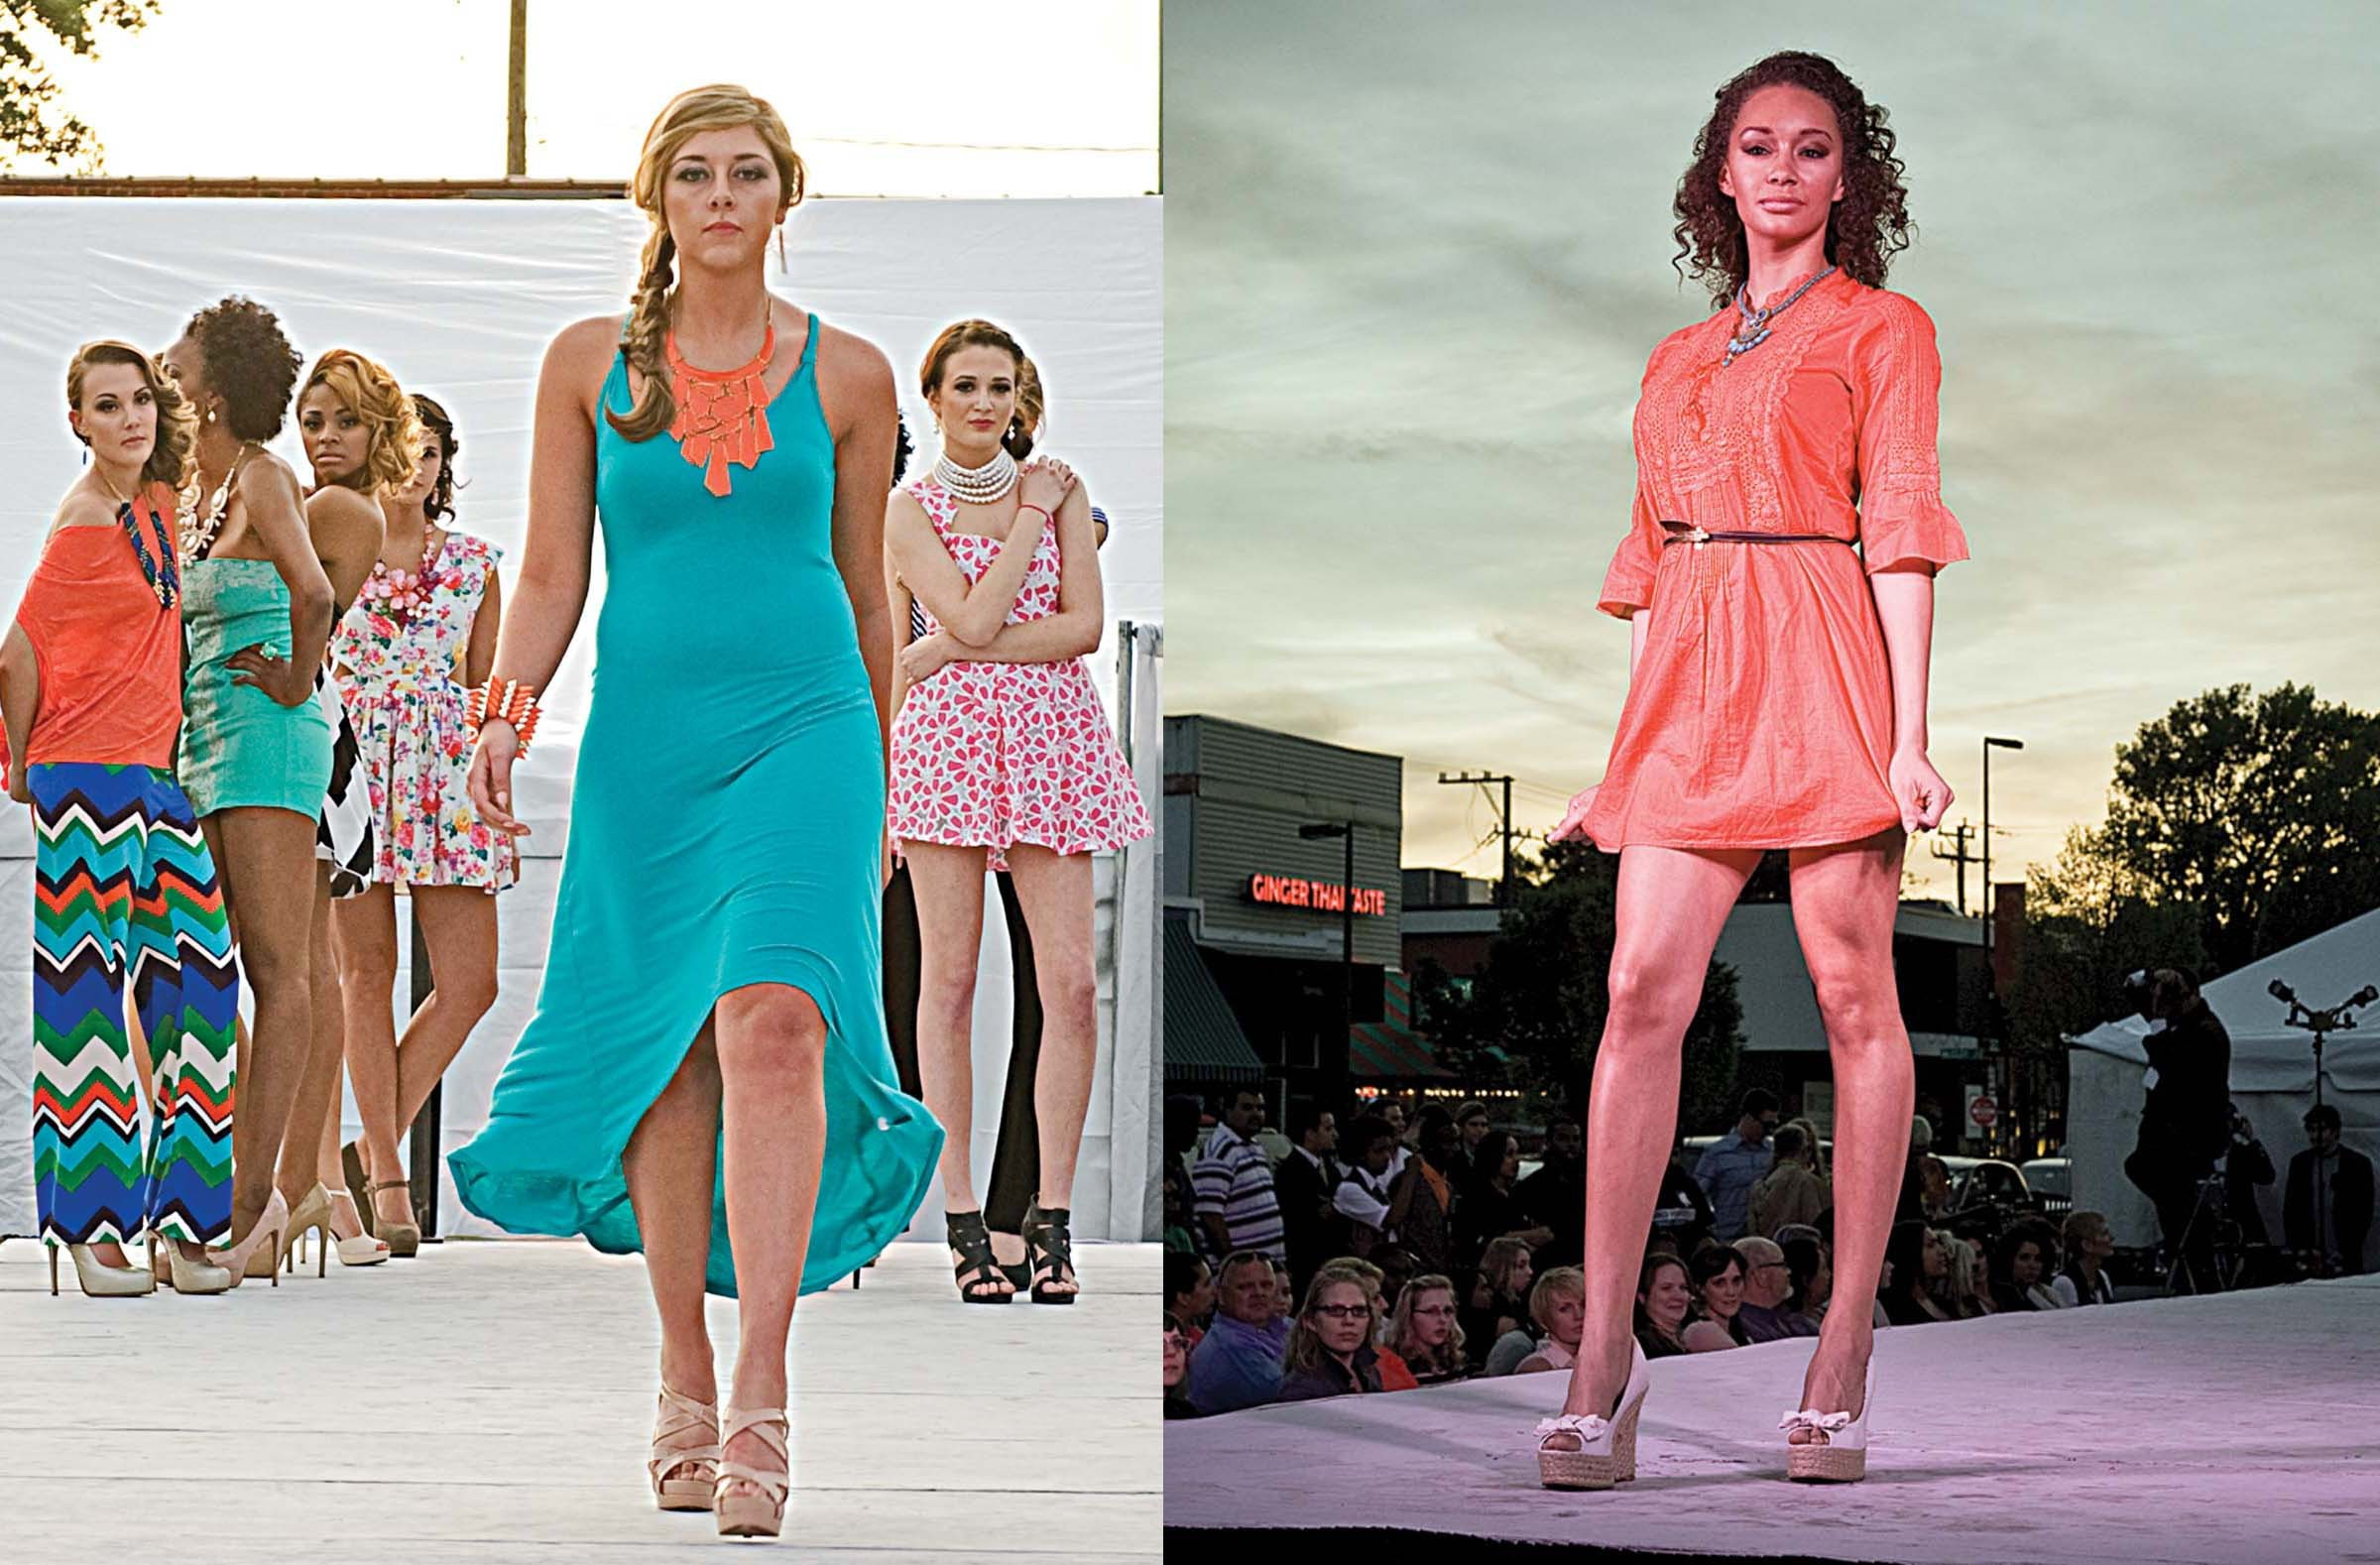 Dresses and sportswear in tropical colors gave RVA Fashion Week some punch in an afternoon show in Carytown. - ASH DANIEL